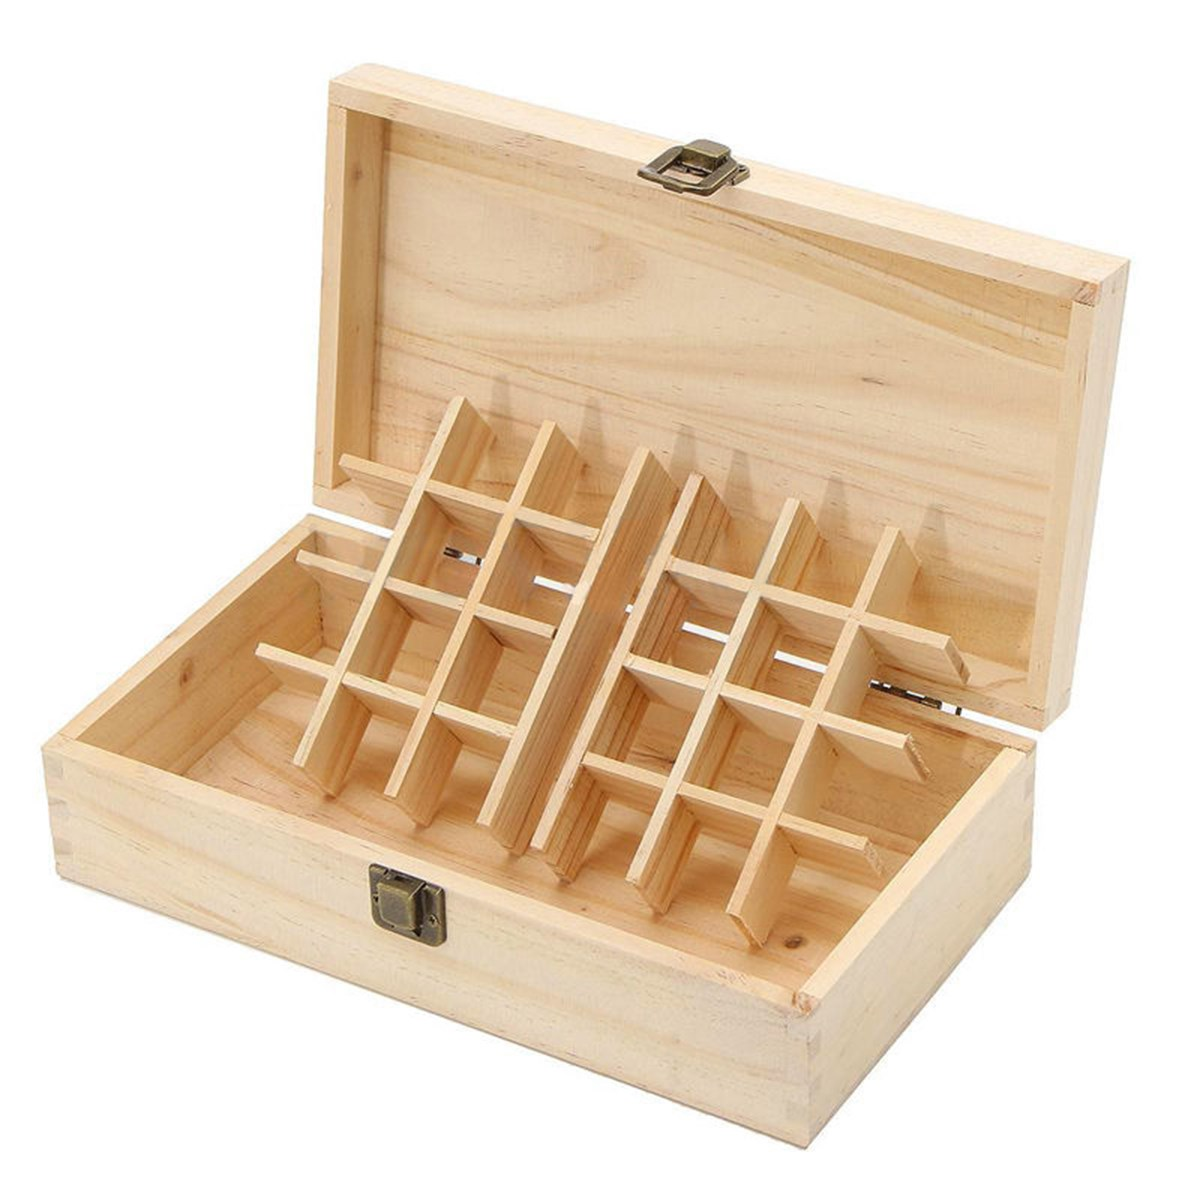 24 Slots Essential Oil Storage Box Wooden Case Holder Container Organizer Aromatherapy Home Decor Box Organization(China)